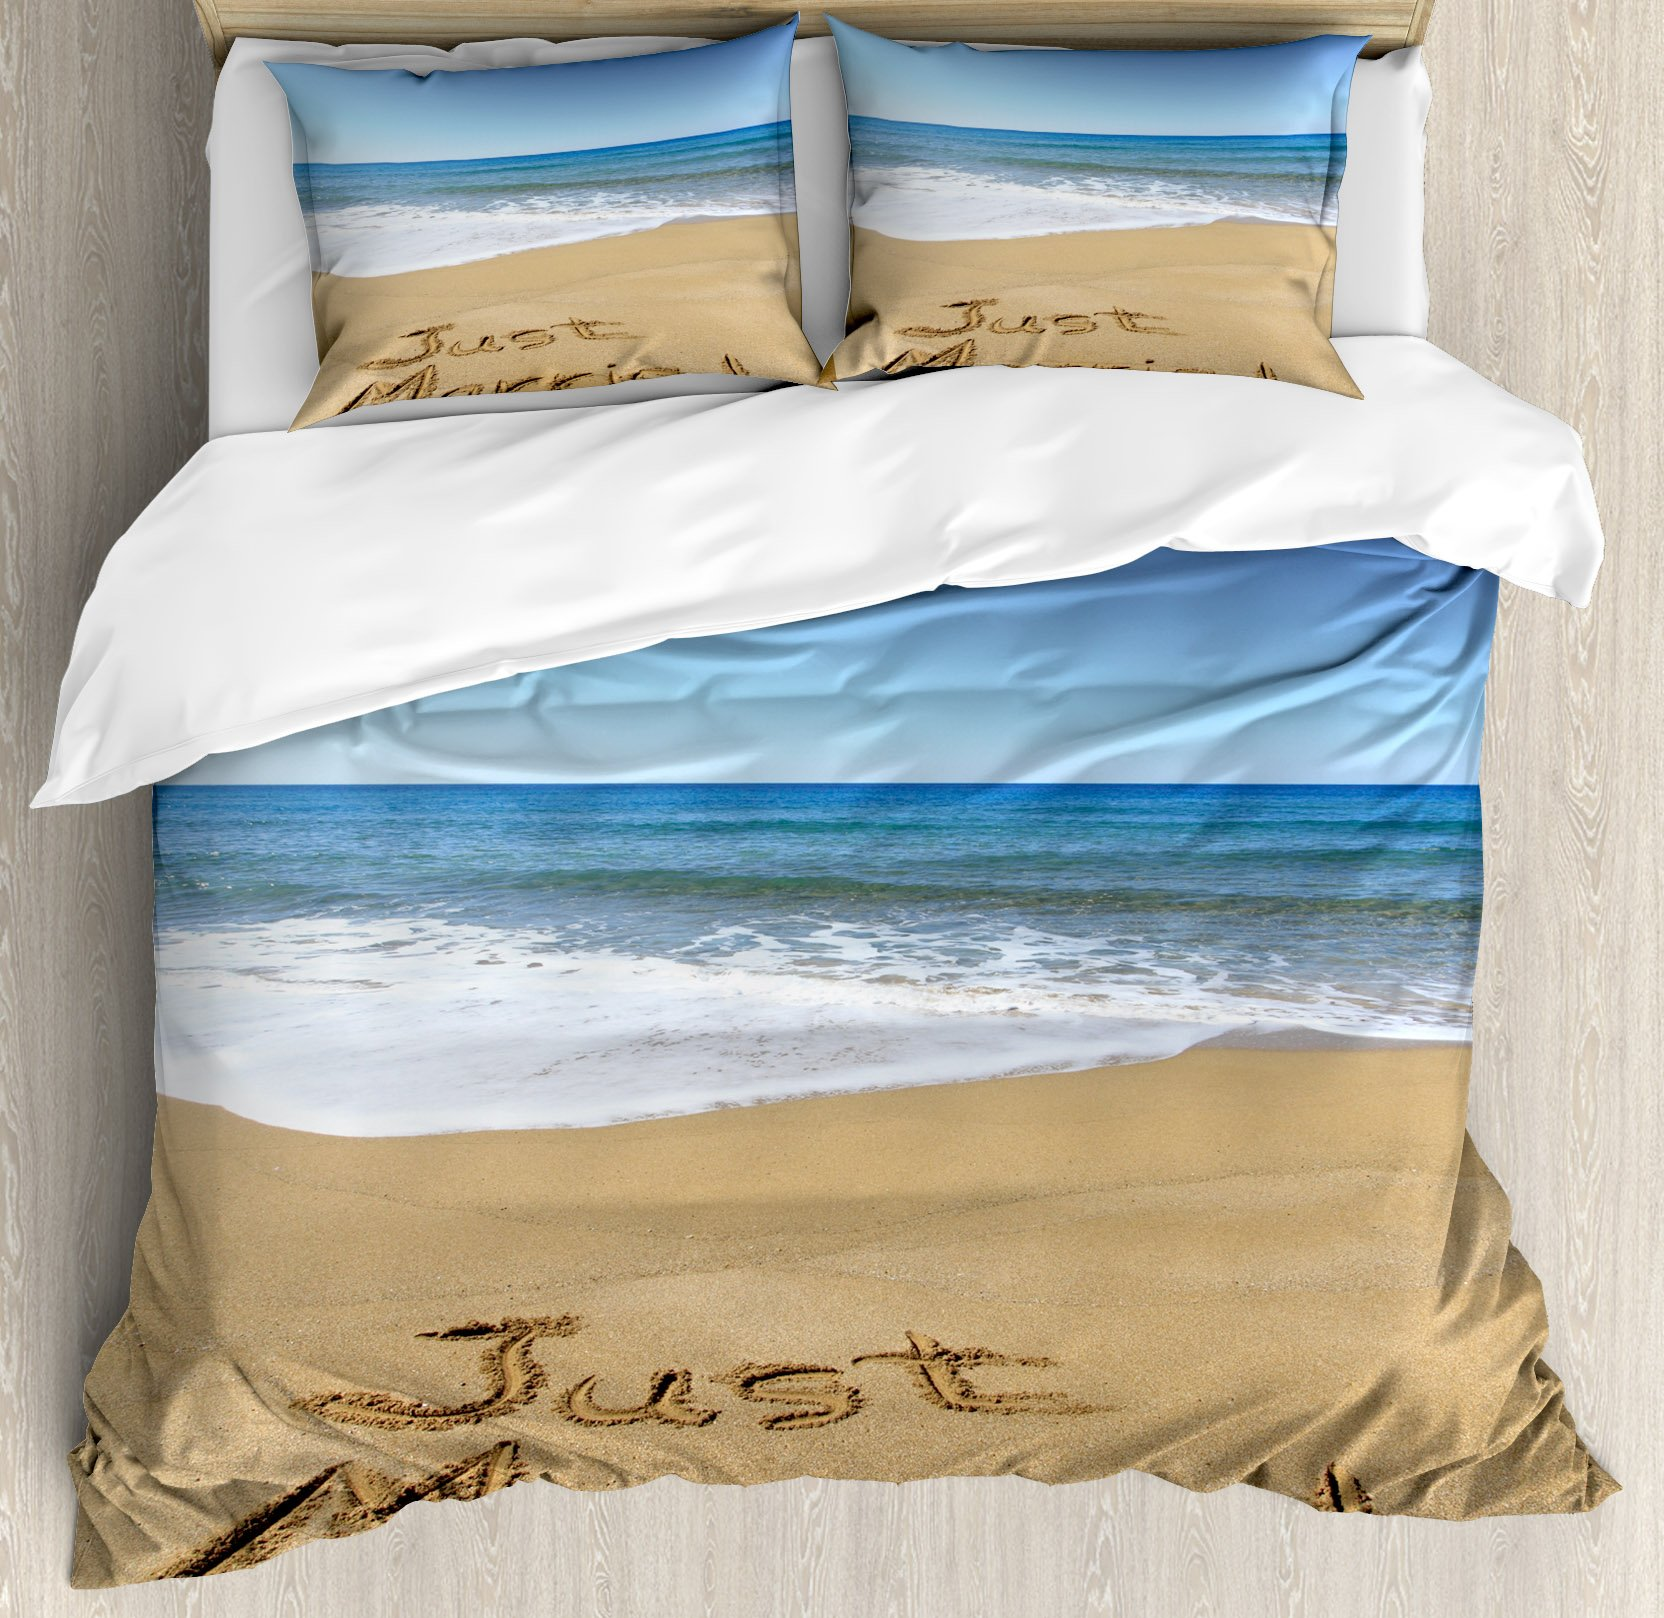 Wedding Decorations Duvet Cover Set by Ambesonne, Just Married Written on Sandy Beach Ocean Waves Romantic Photo, 3 Piece Bedding Set with Pillow Shams, King Size, Blue Brown White by Ambesonne